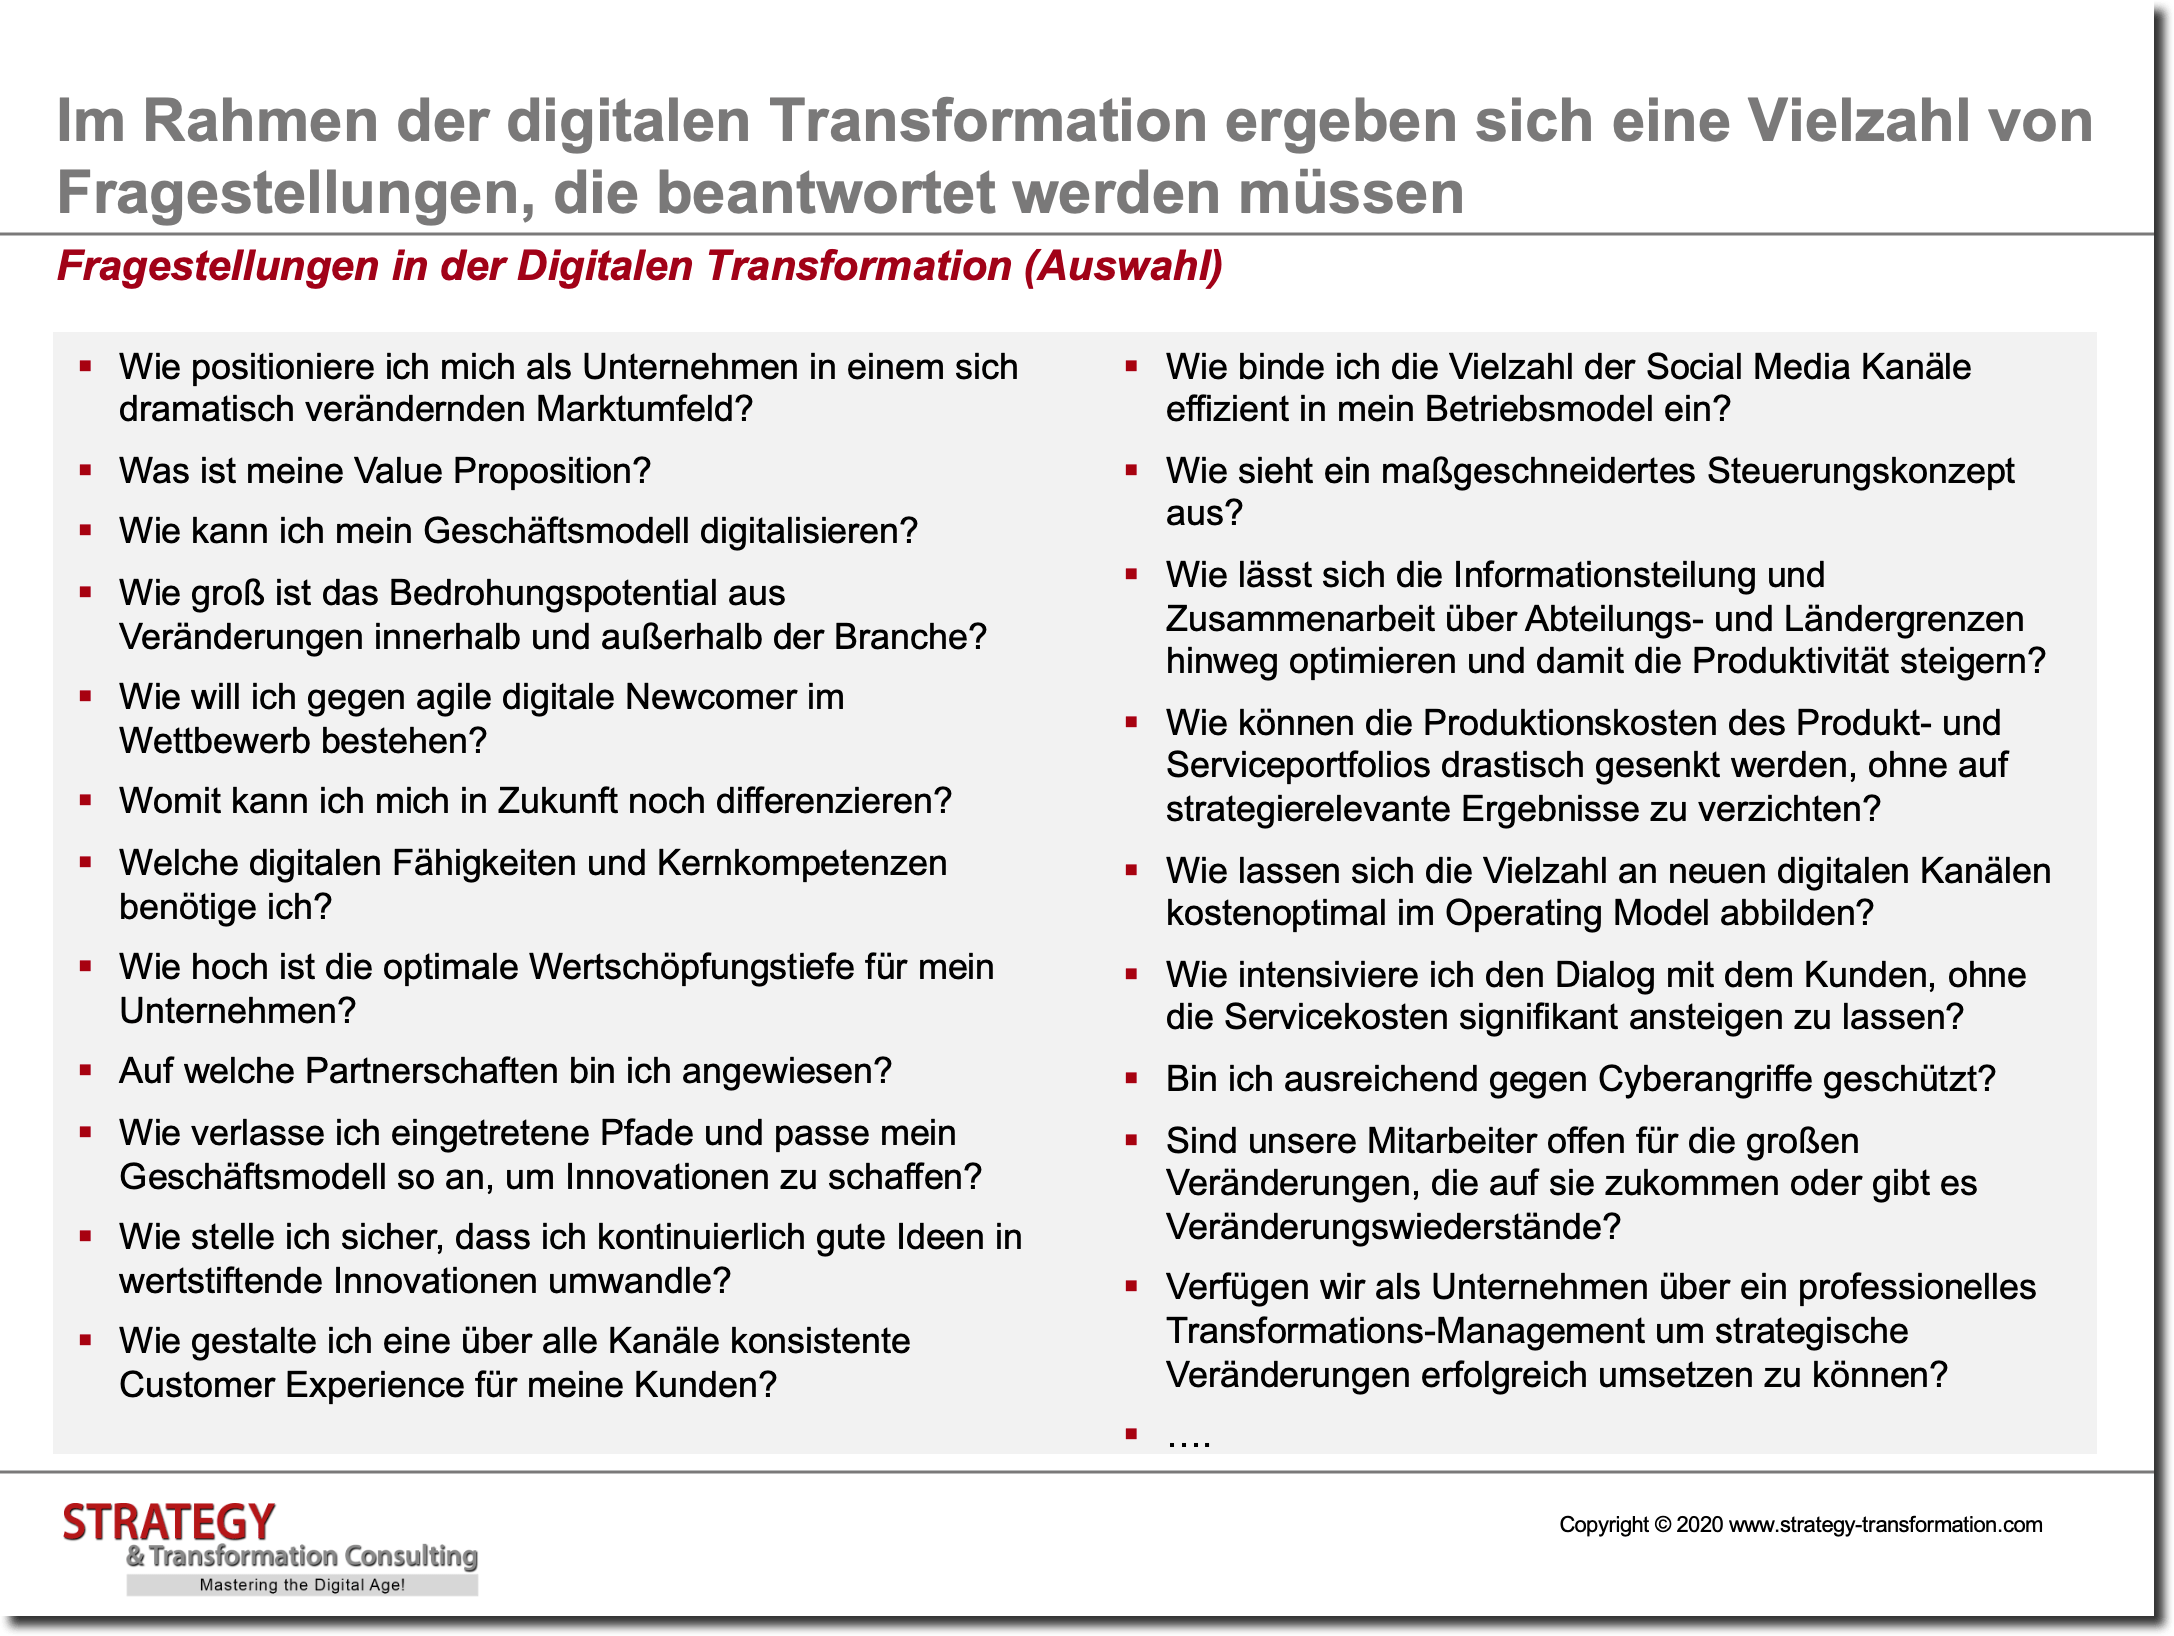 Fragestellungen in der Digitalen Transformation